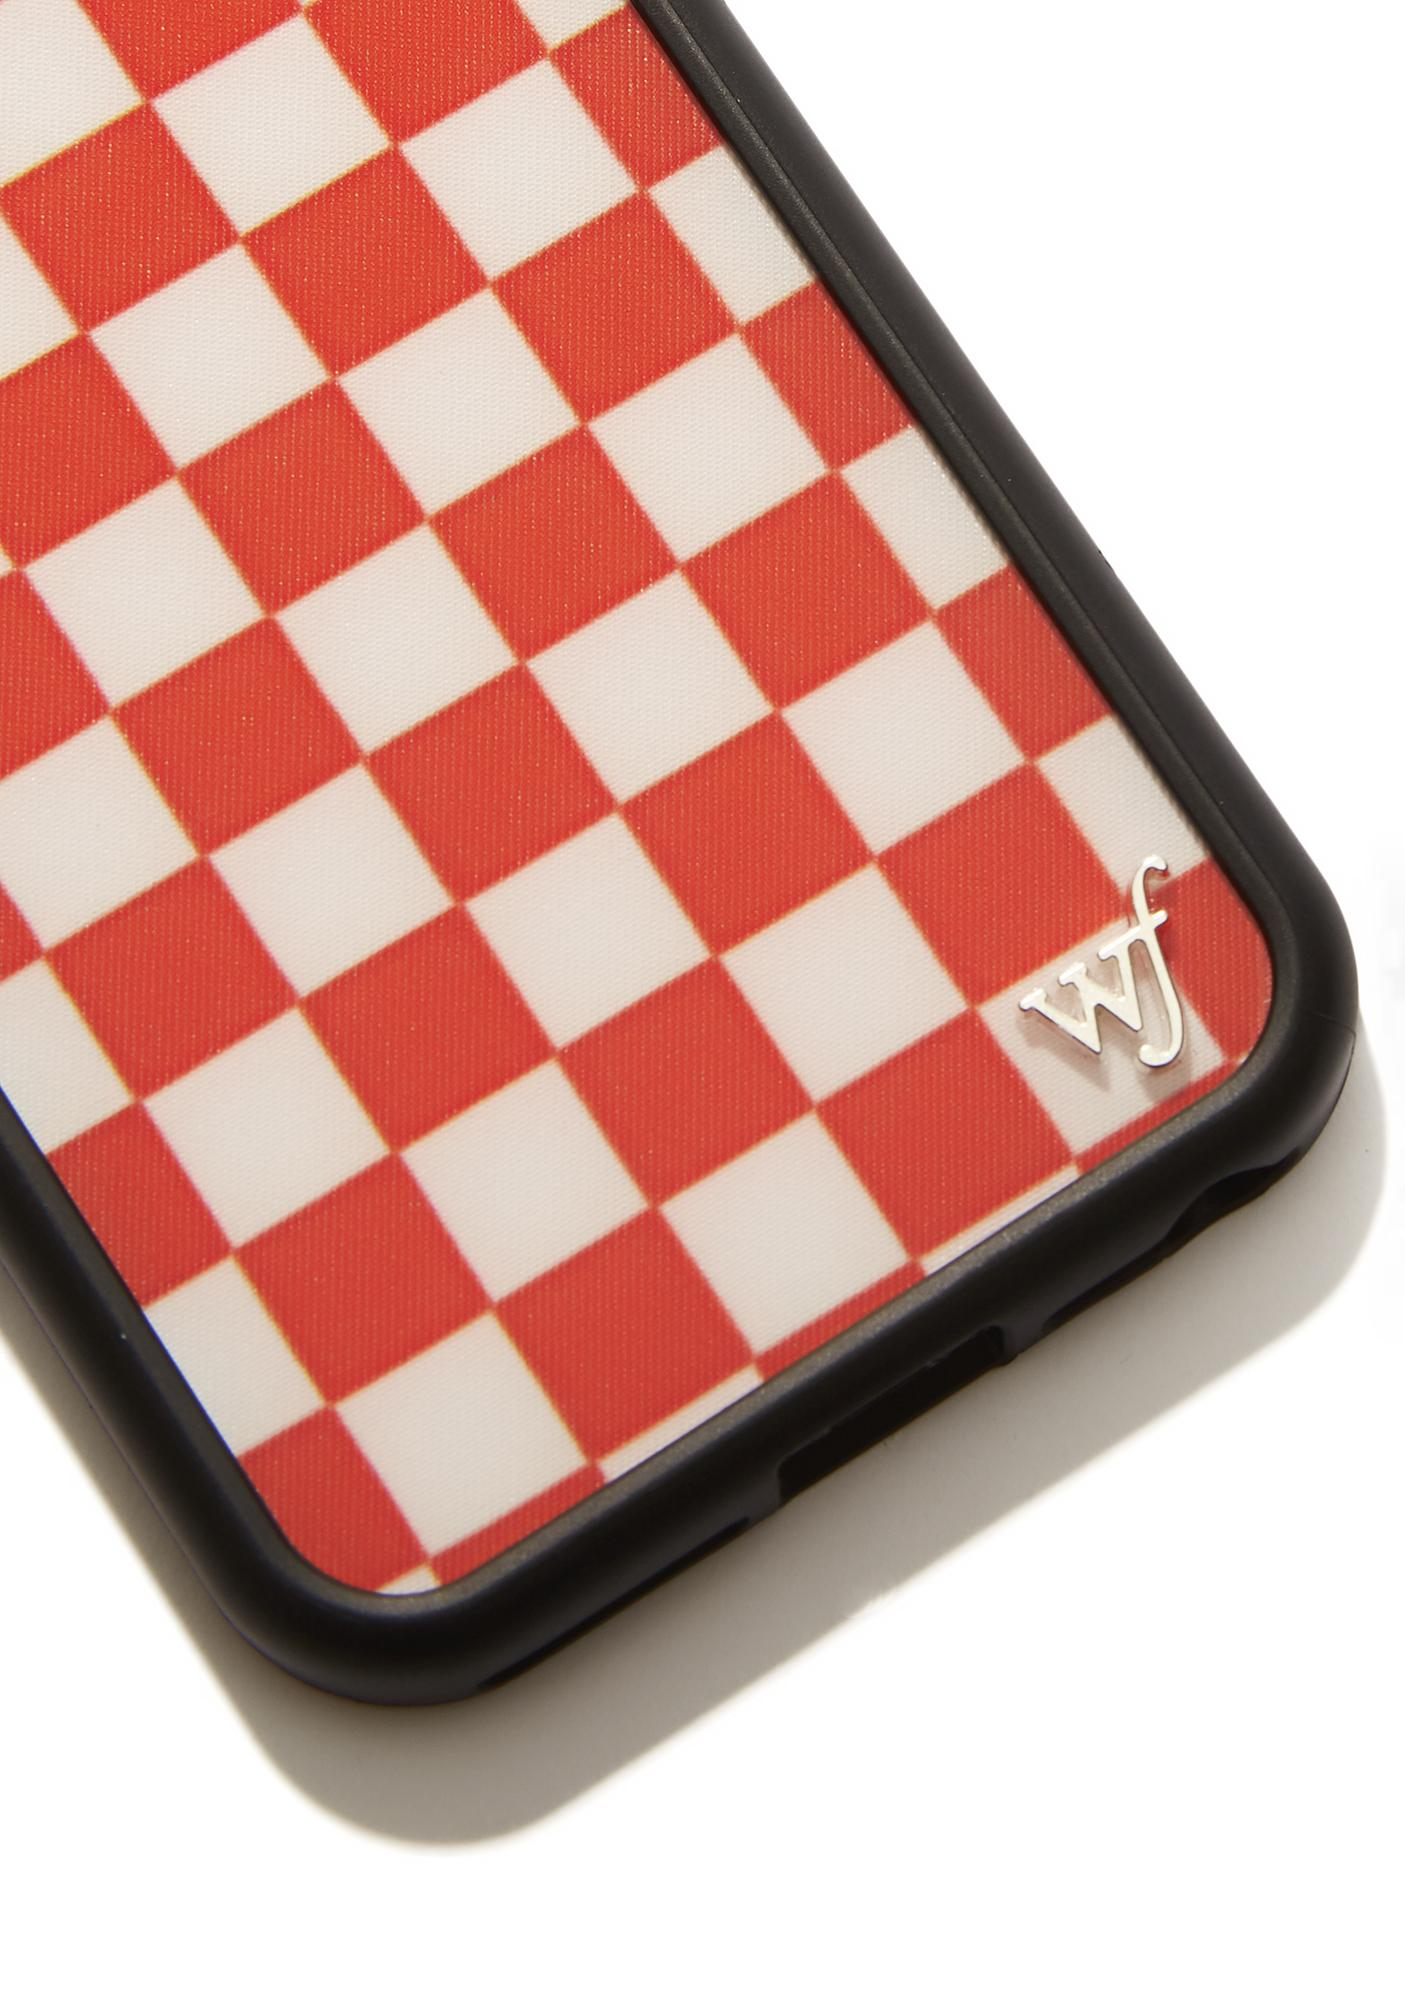 Wildflower Red Checkers IPhone Case